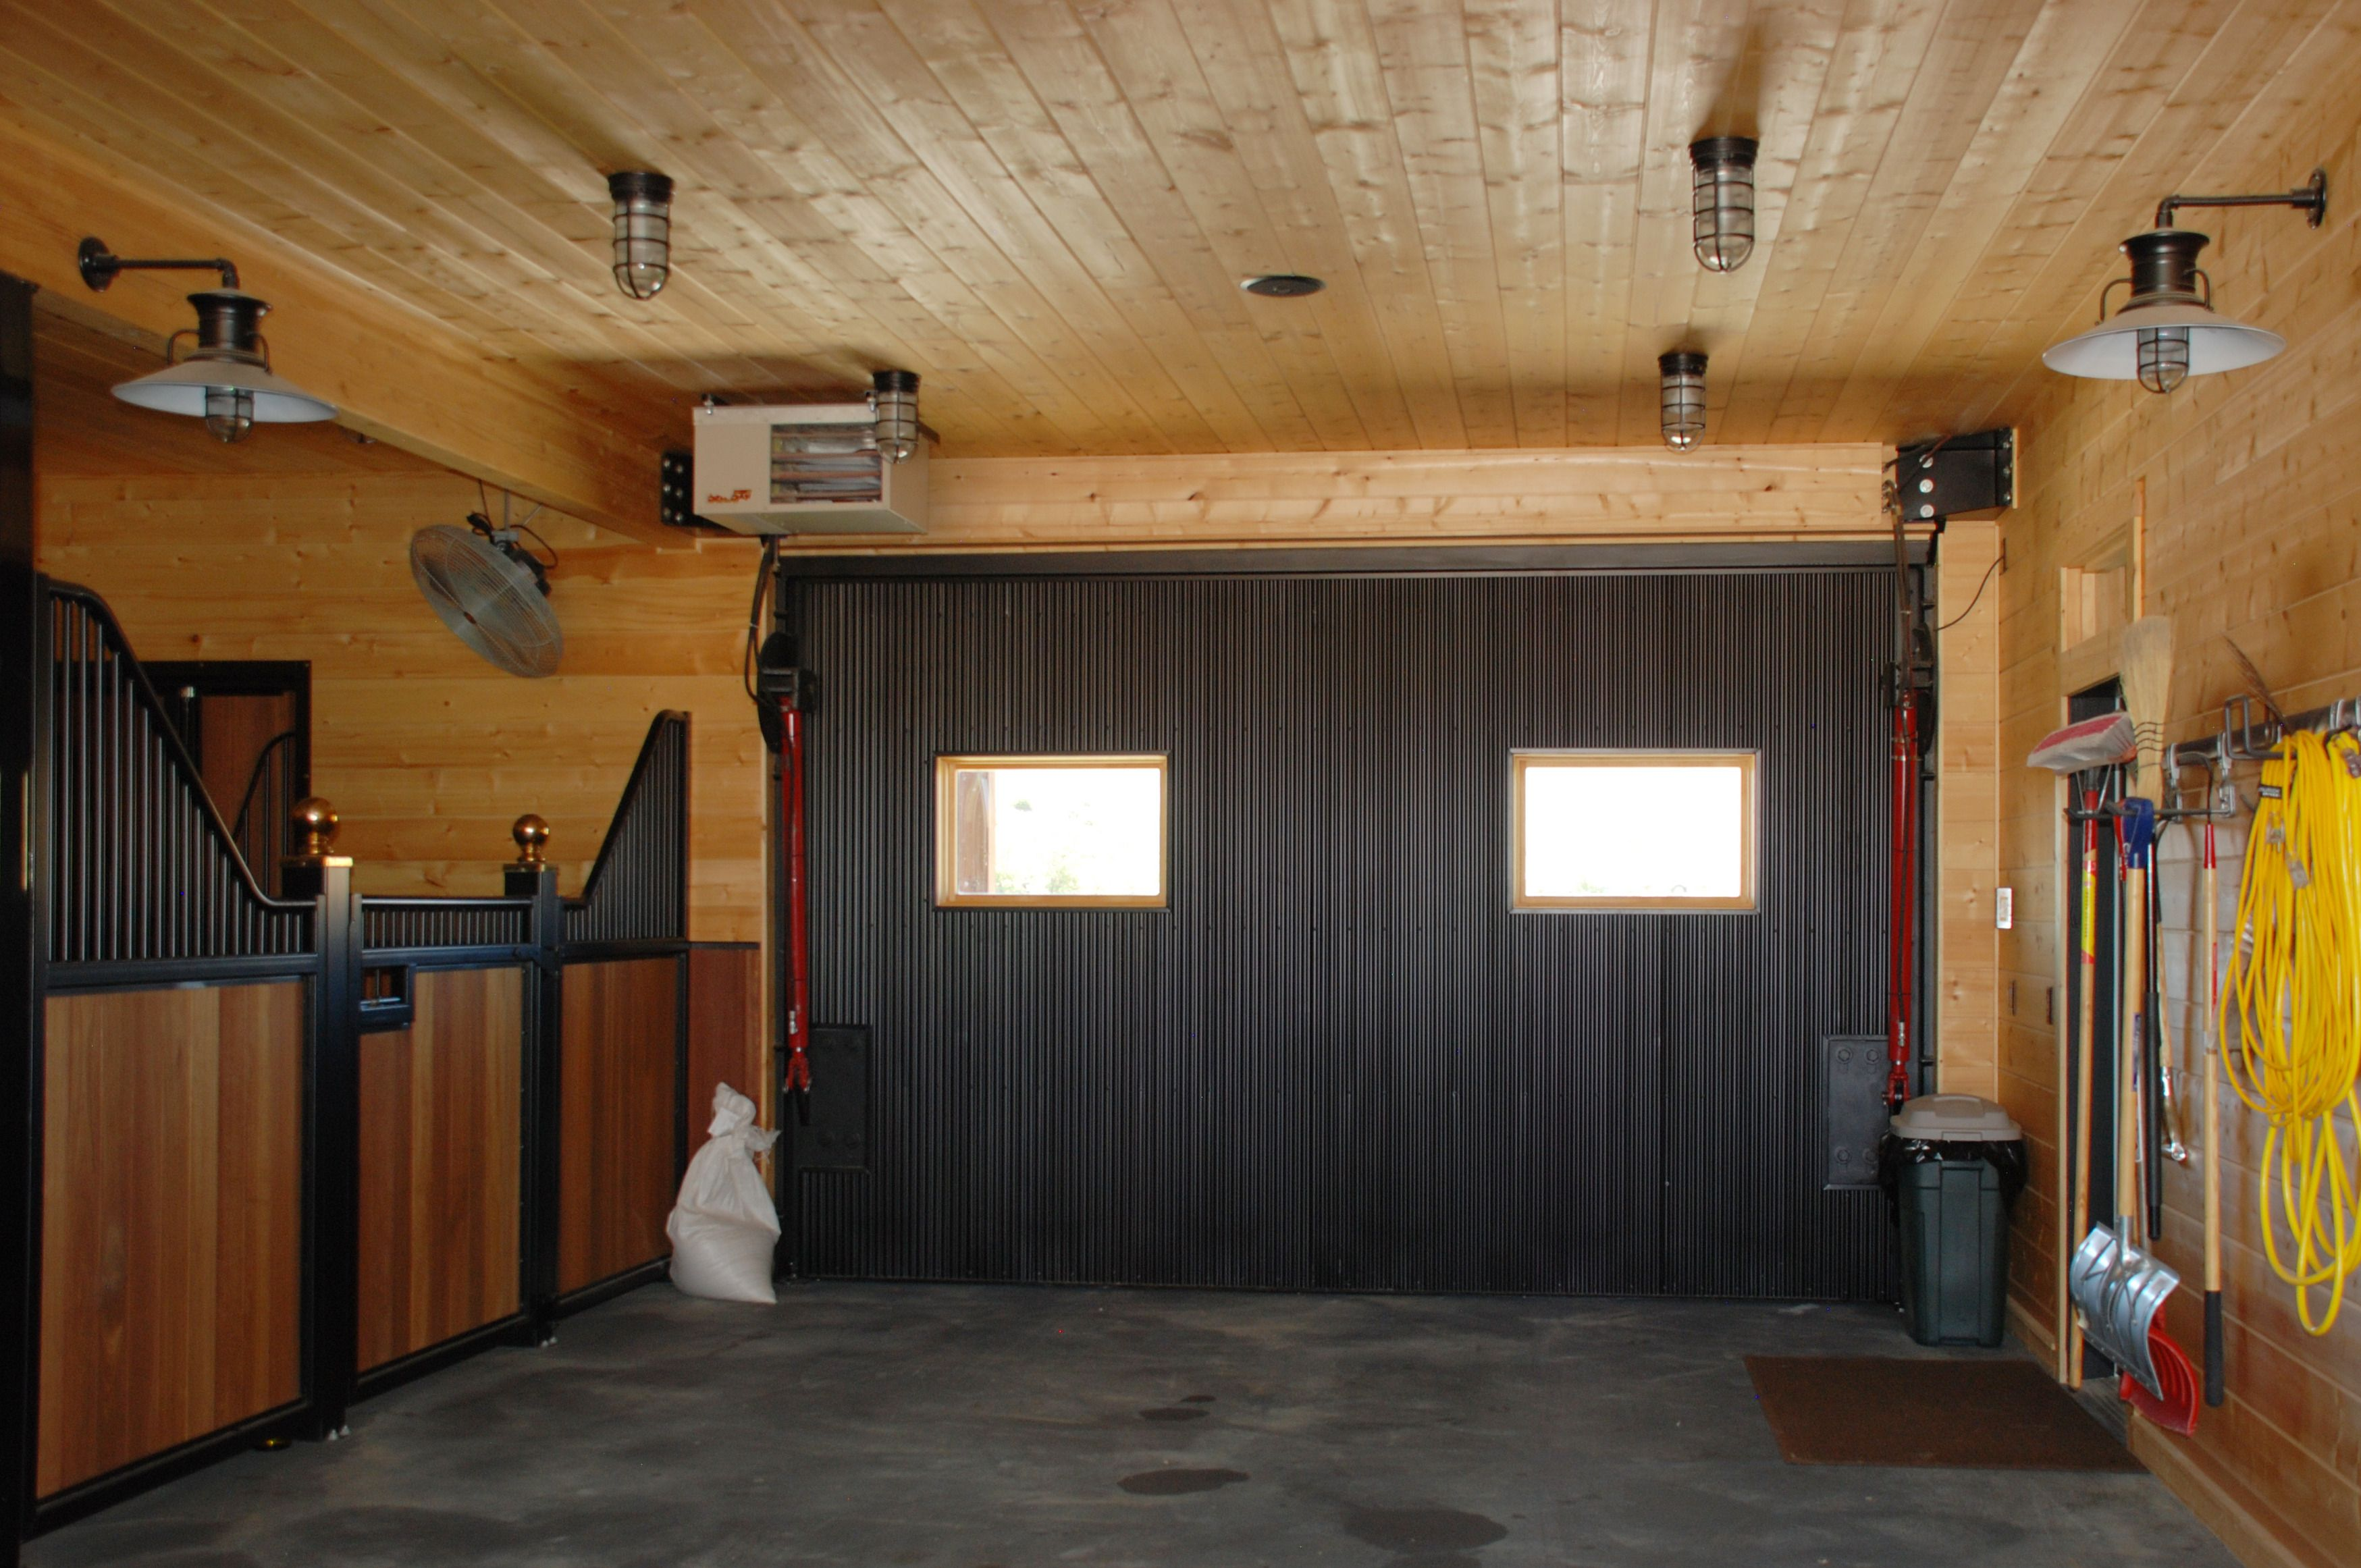 Corrugated Metal Interior Design Black Corrugated Metal On The Inside Of The Garage Door Amps Up